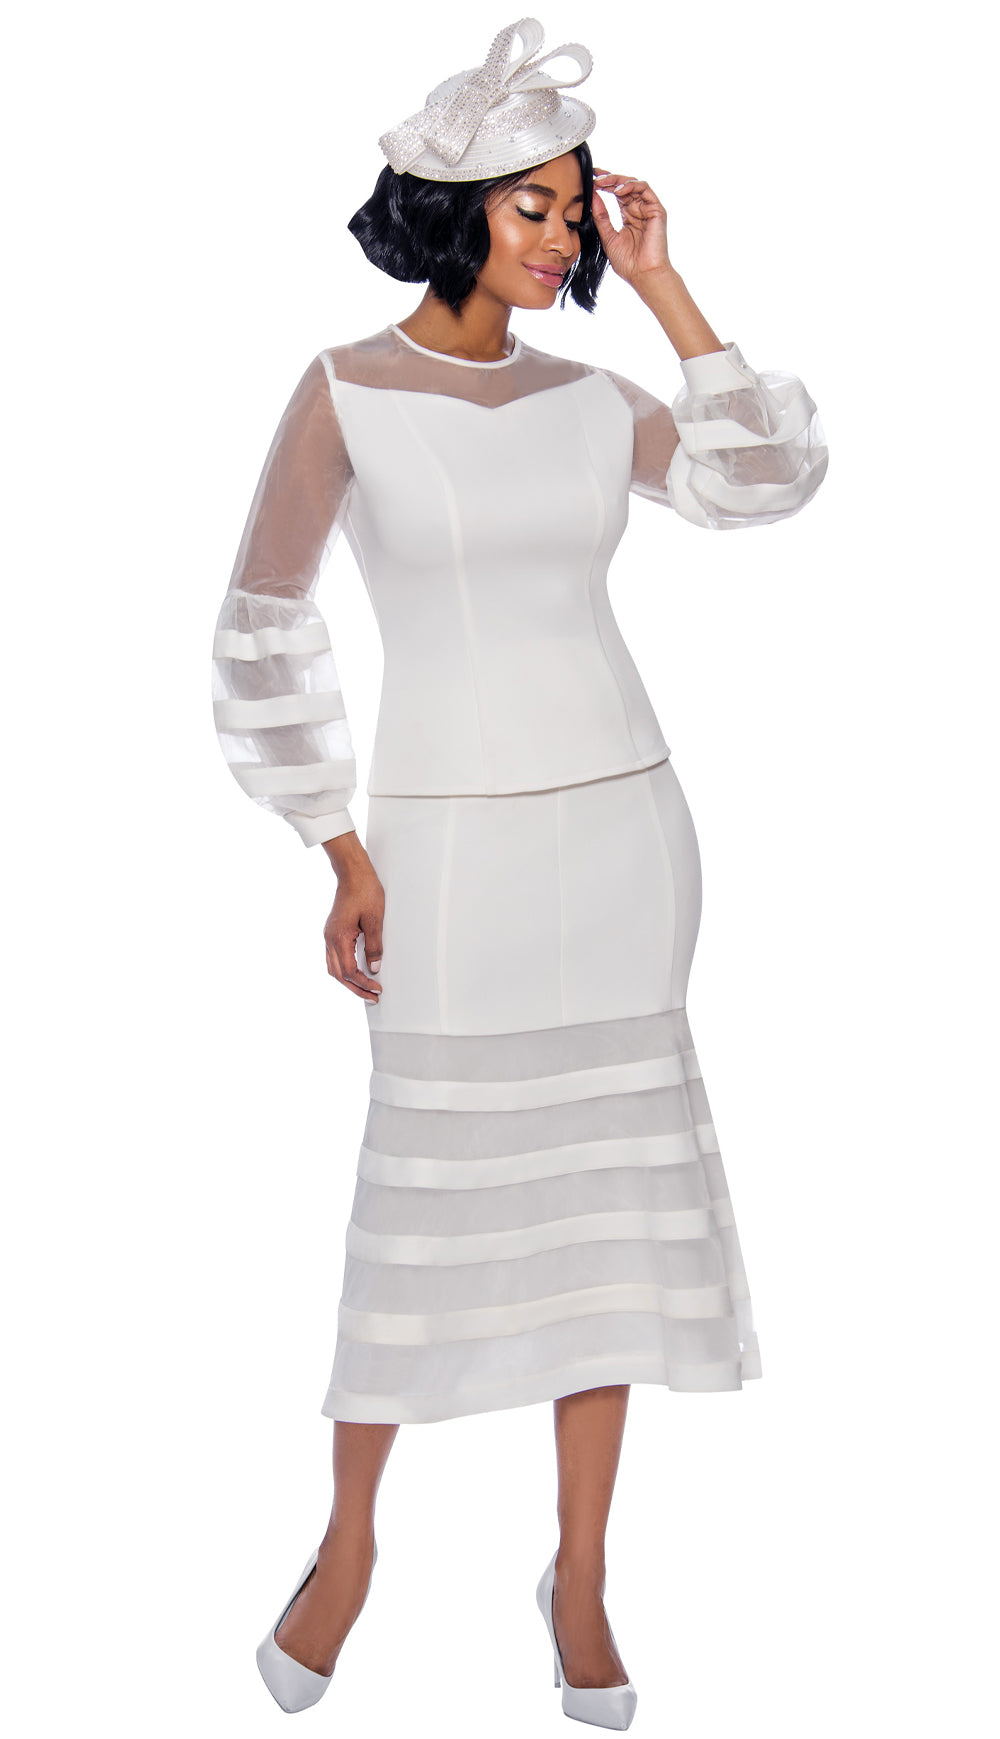 Terramina Dress 7767 - Church Suits For Less